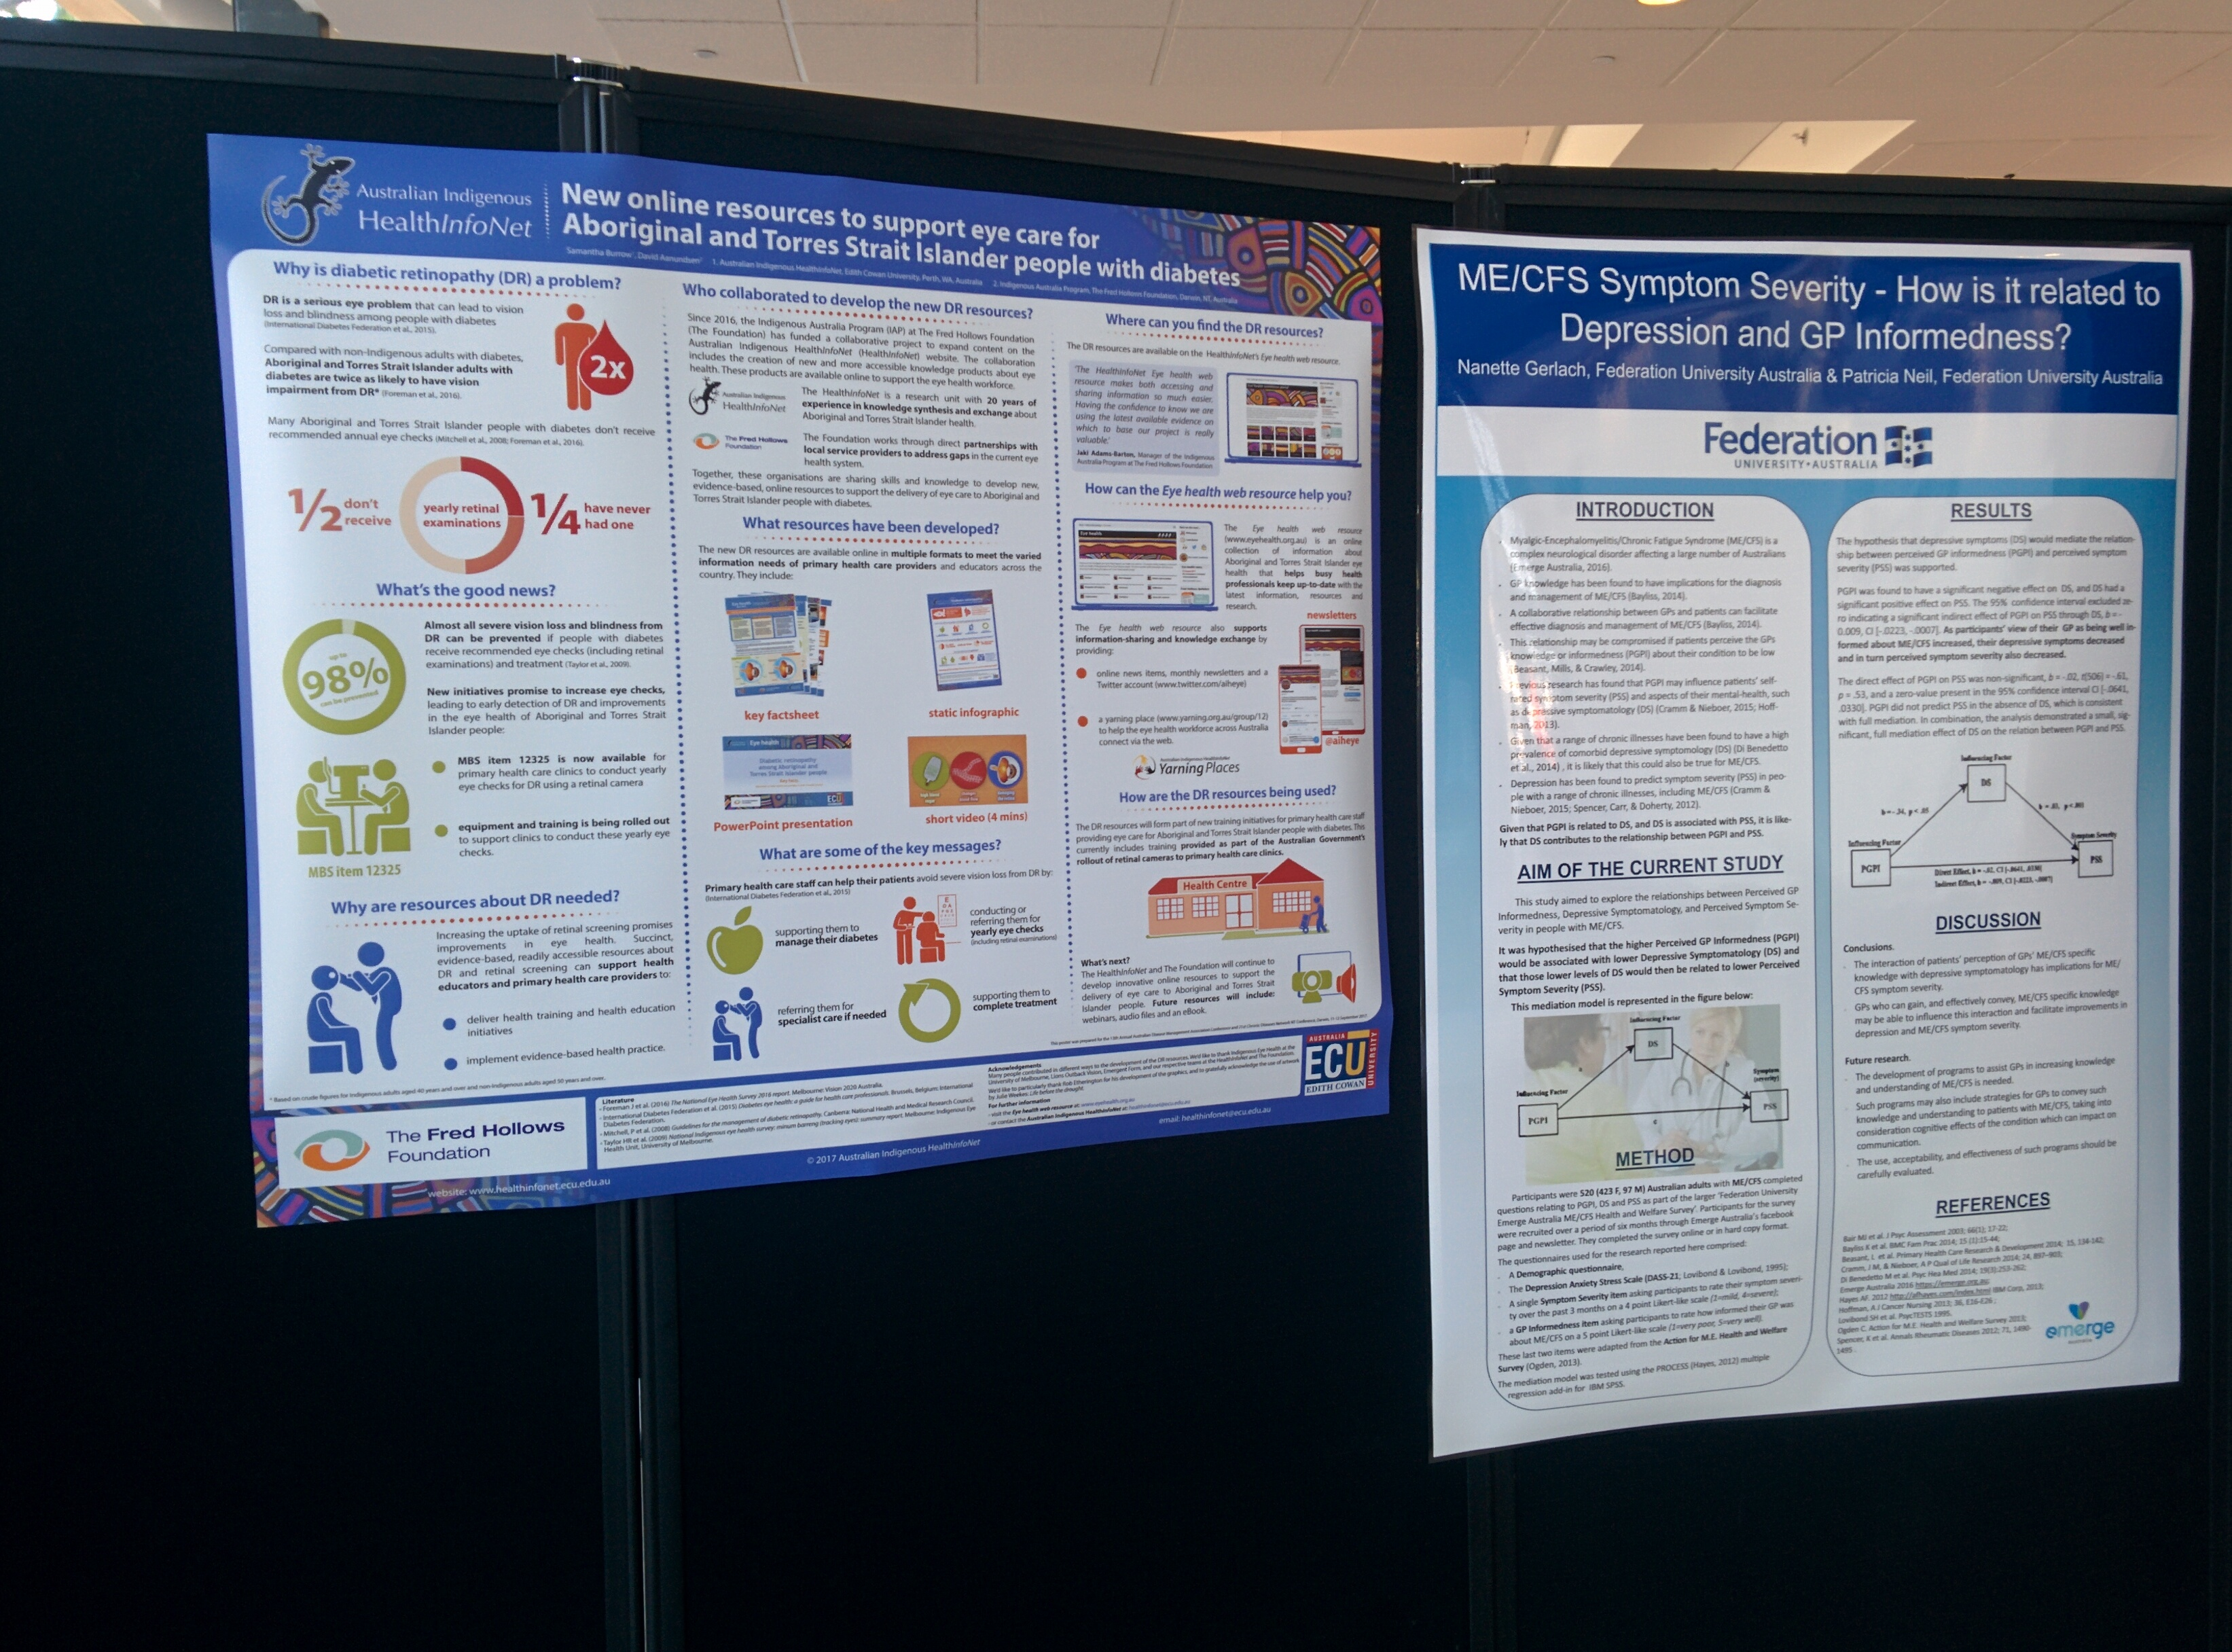 The HealthInfoNet and The Fred Hollows Foundation's conference poster